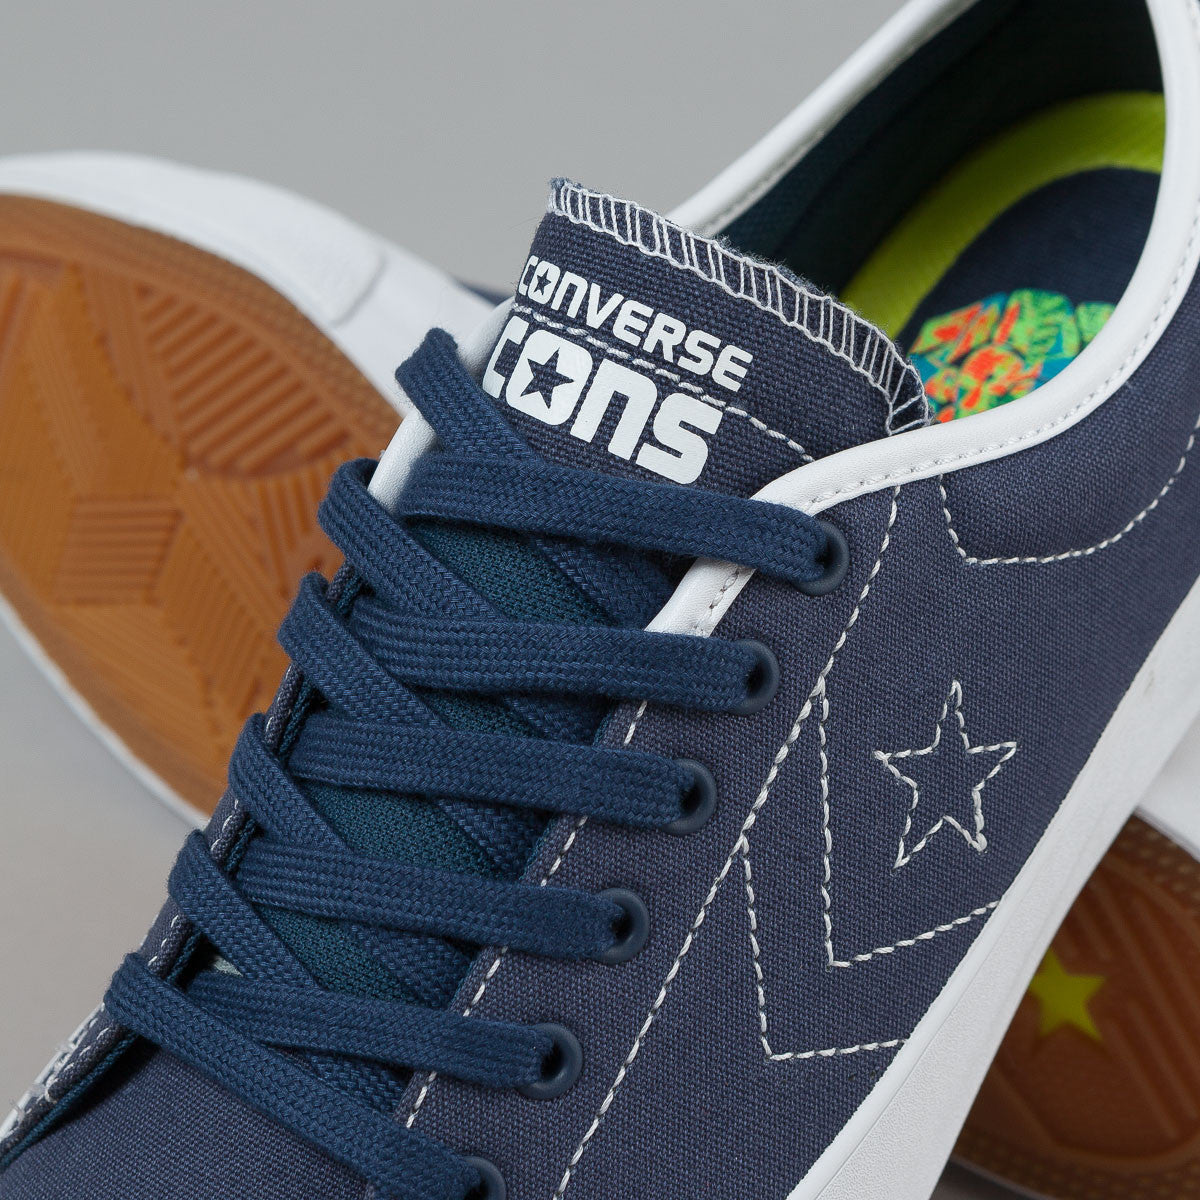 Converse CONS Sumner OX Shoes - (Louie Lopez) Navy / White / Navy